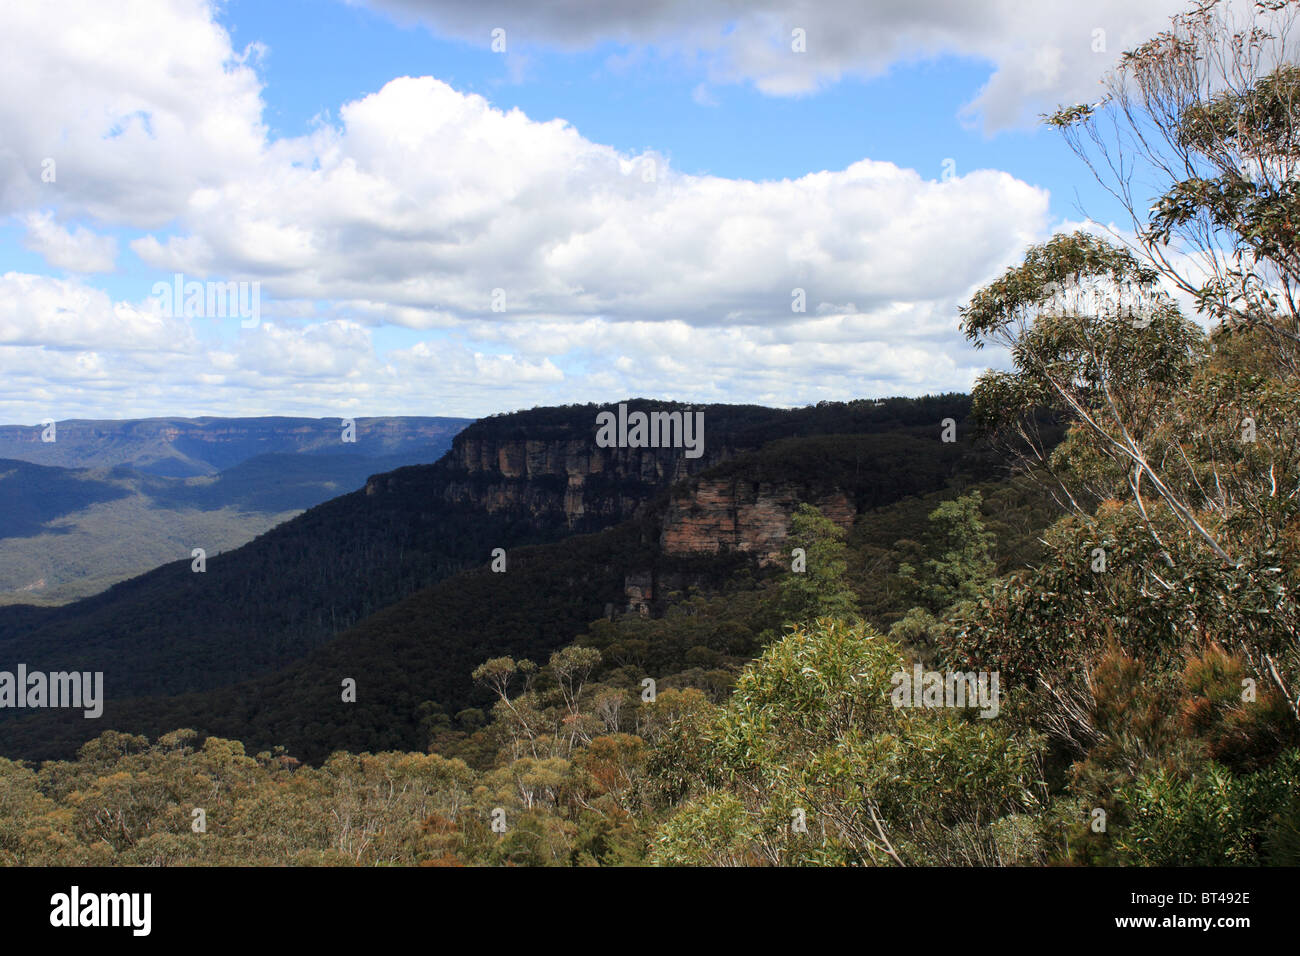 Sublime Point seen from Jamison Lookout, Blue Mountains National Park, New South Wales, eastern Australia, Australasia - Stock Image